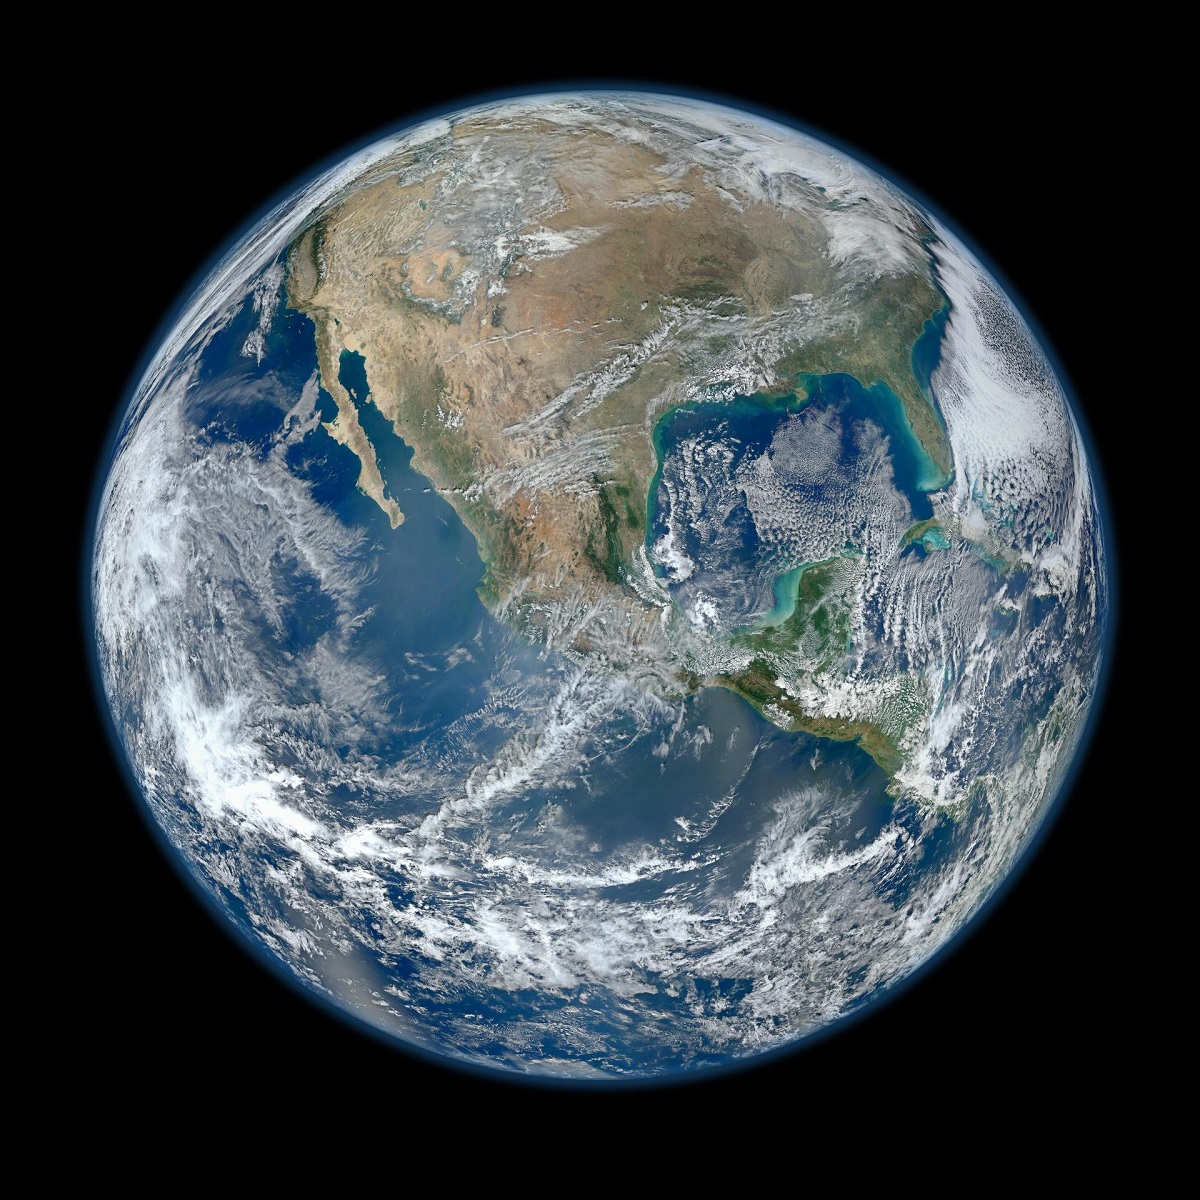 Planet Earth is blue - NASA photos on Silver Magazine www.silvermagazine.co.uk